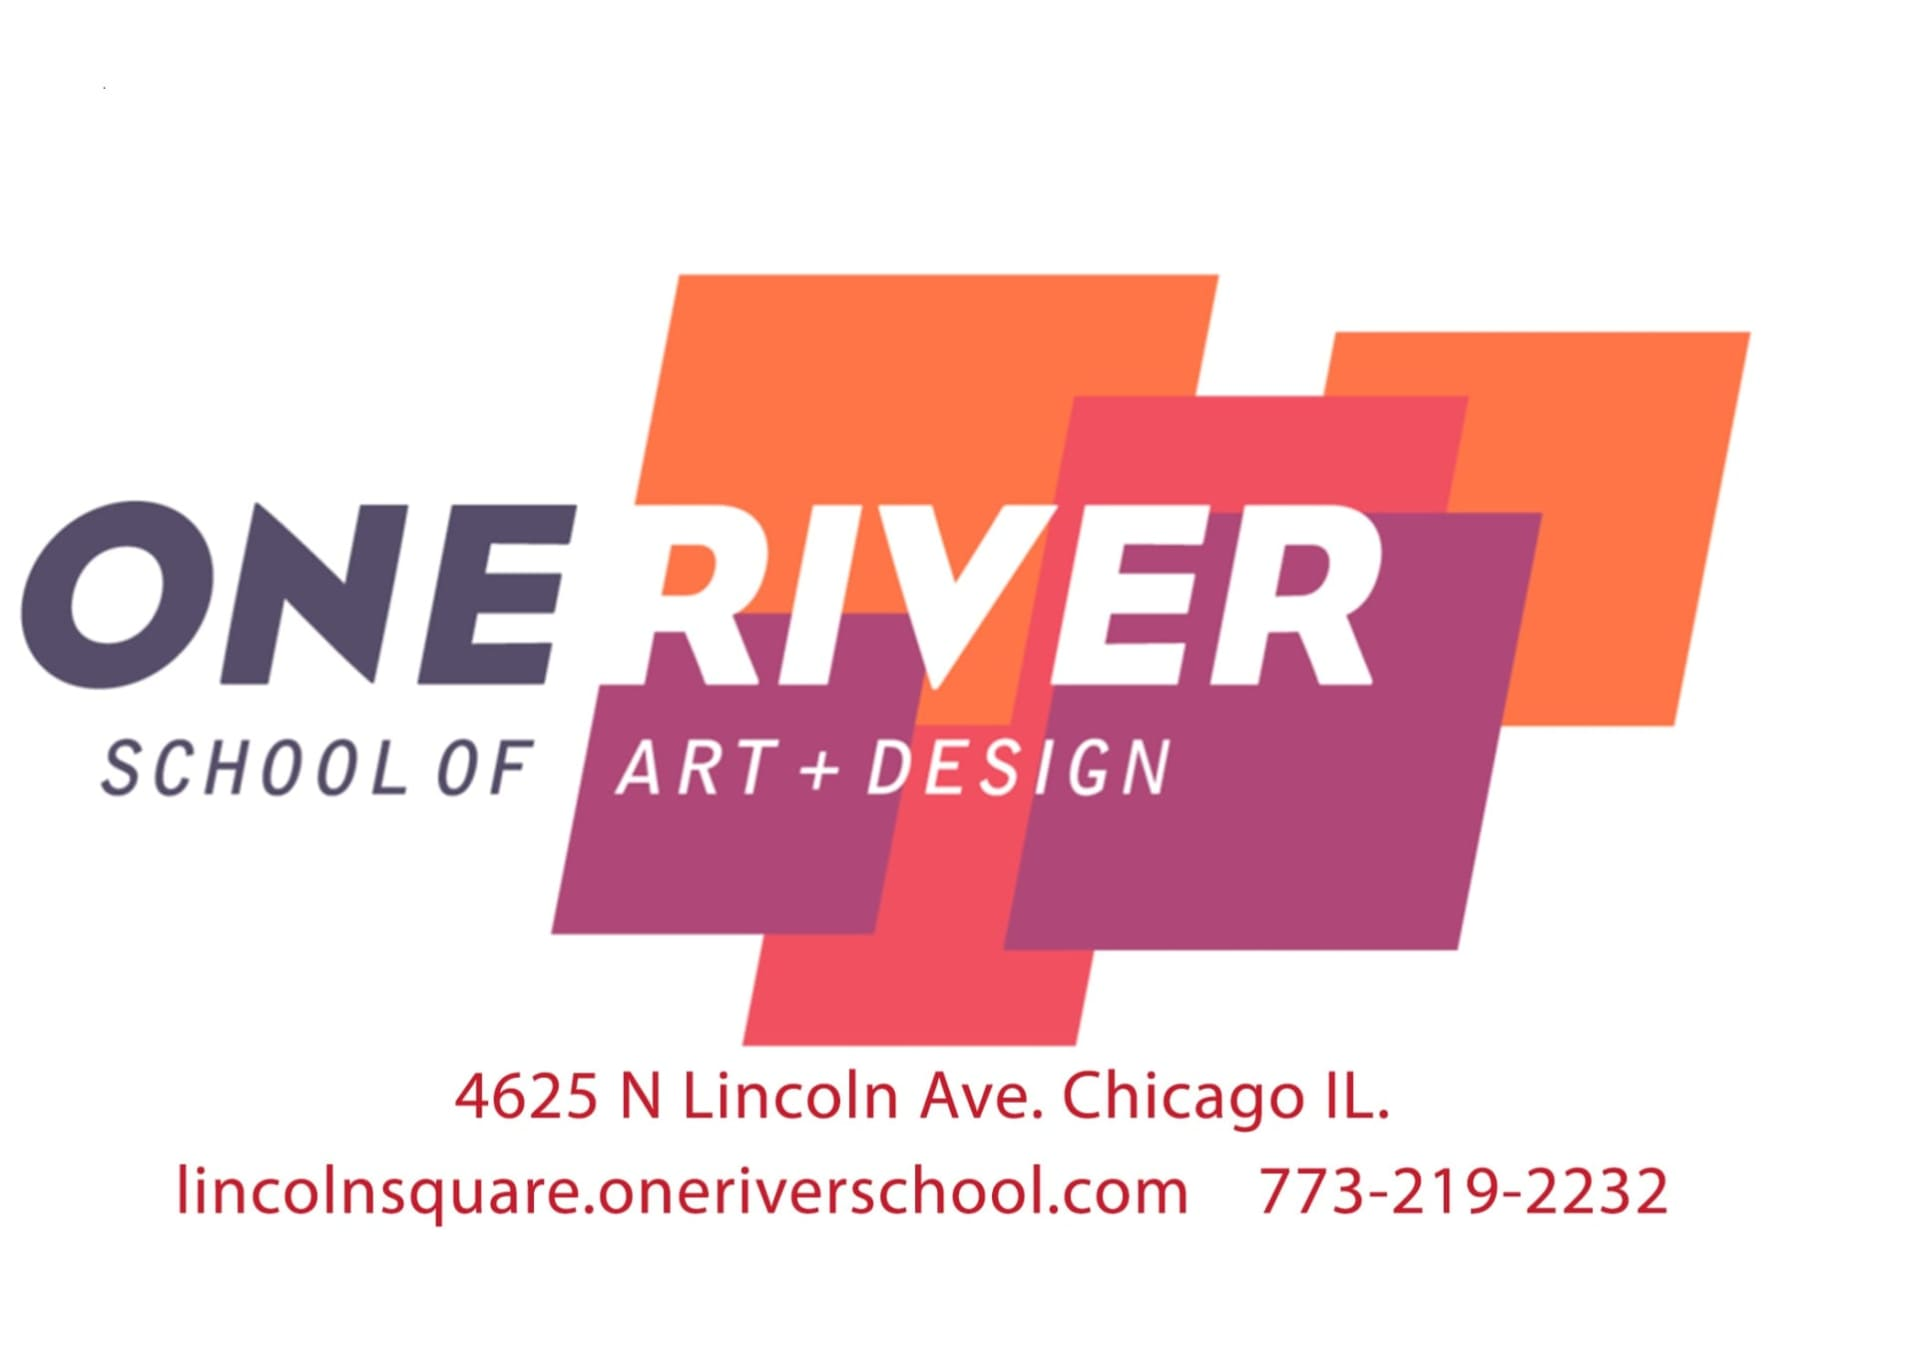 One-River_Logo-with-add-1-w1920.jpg